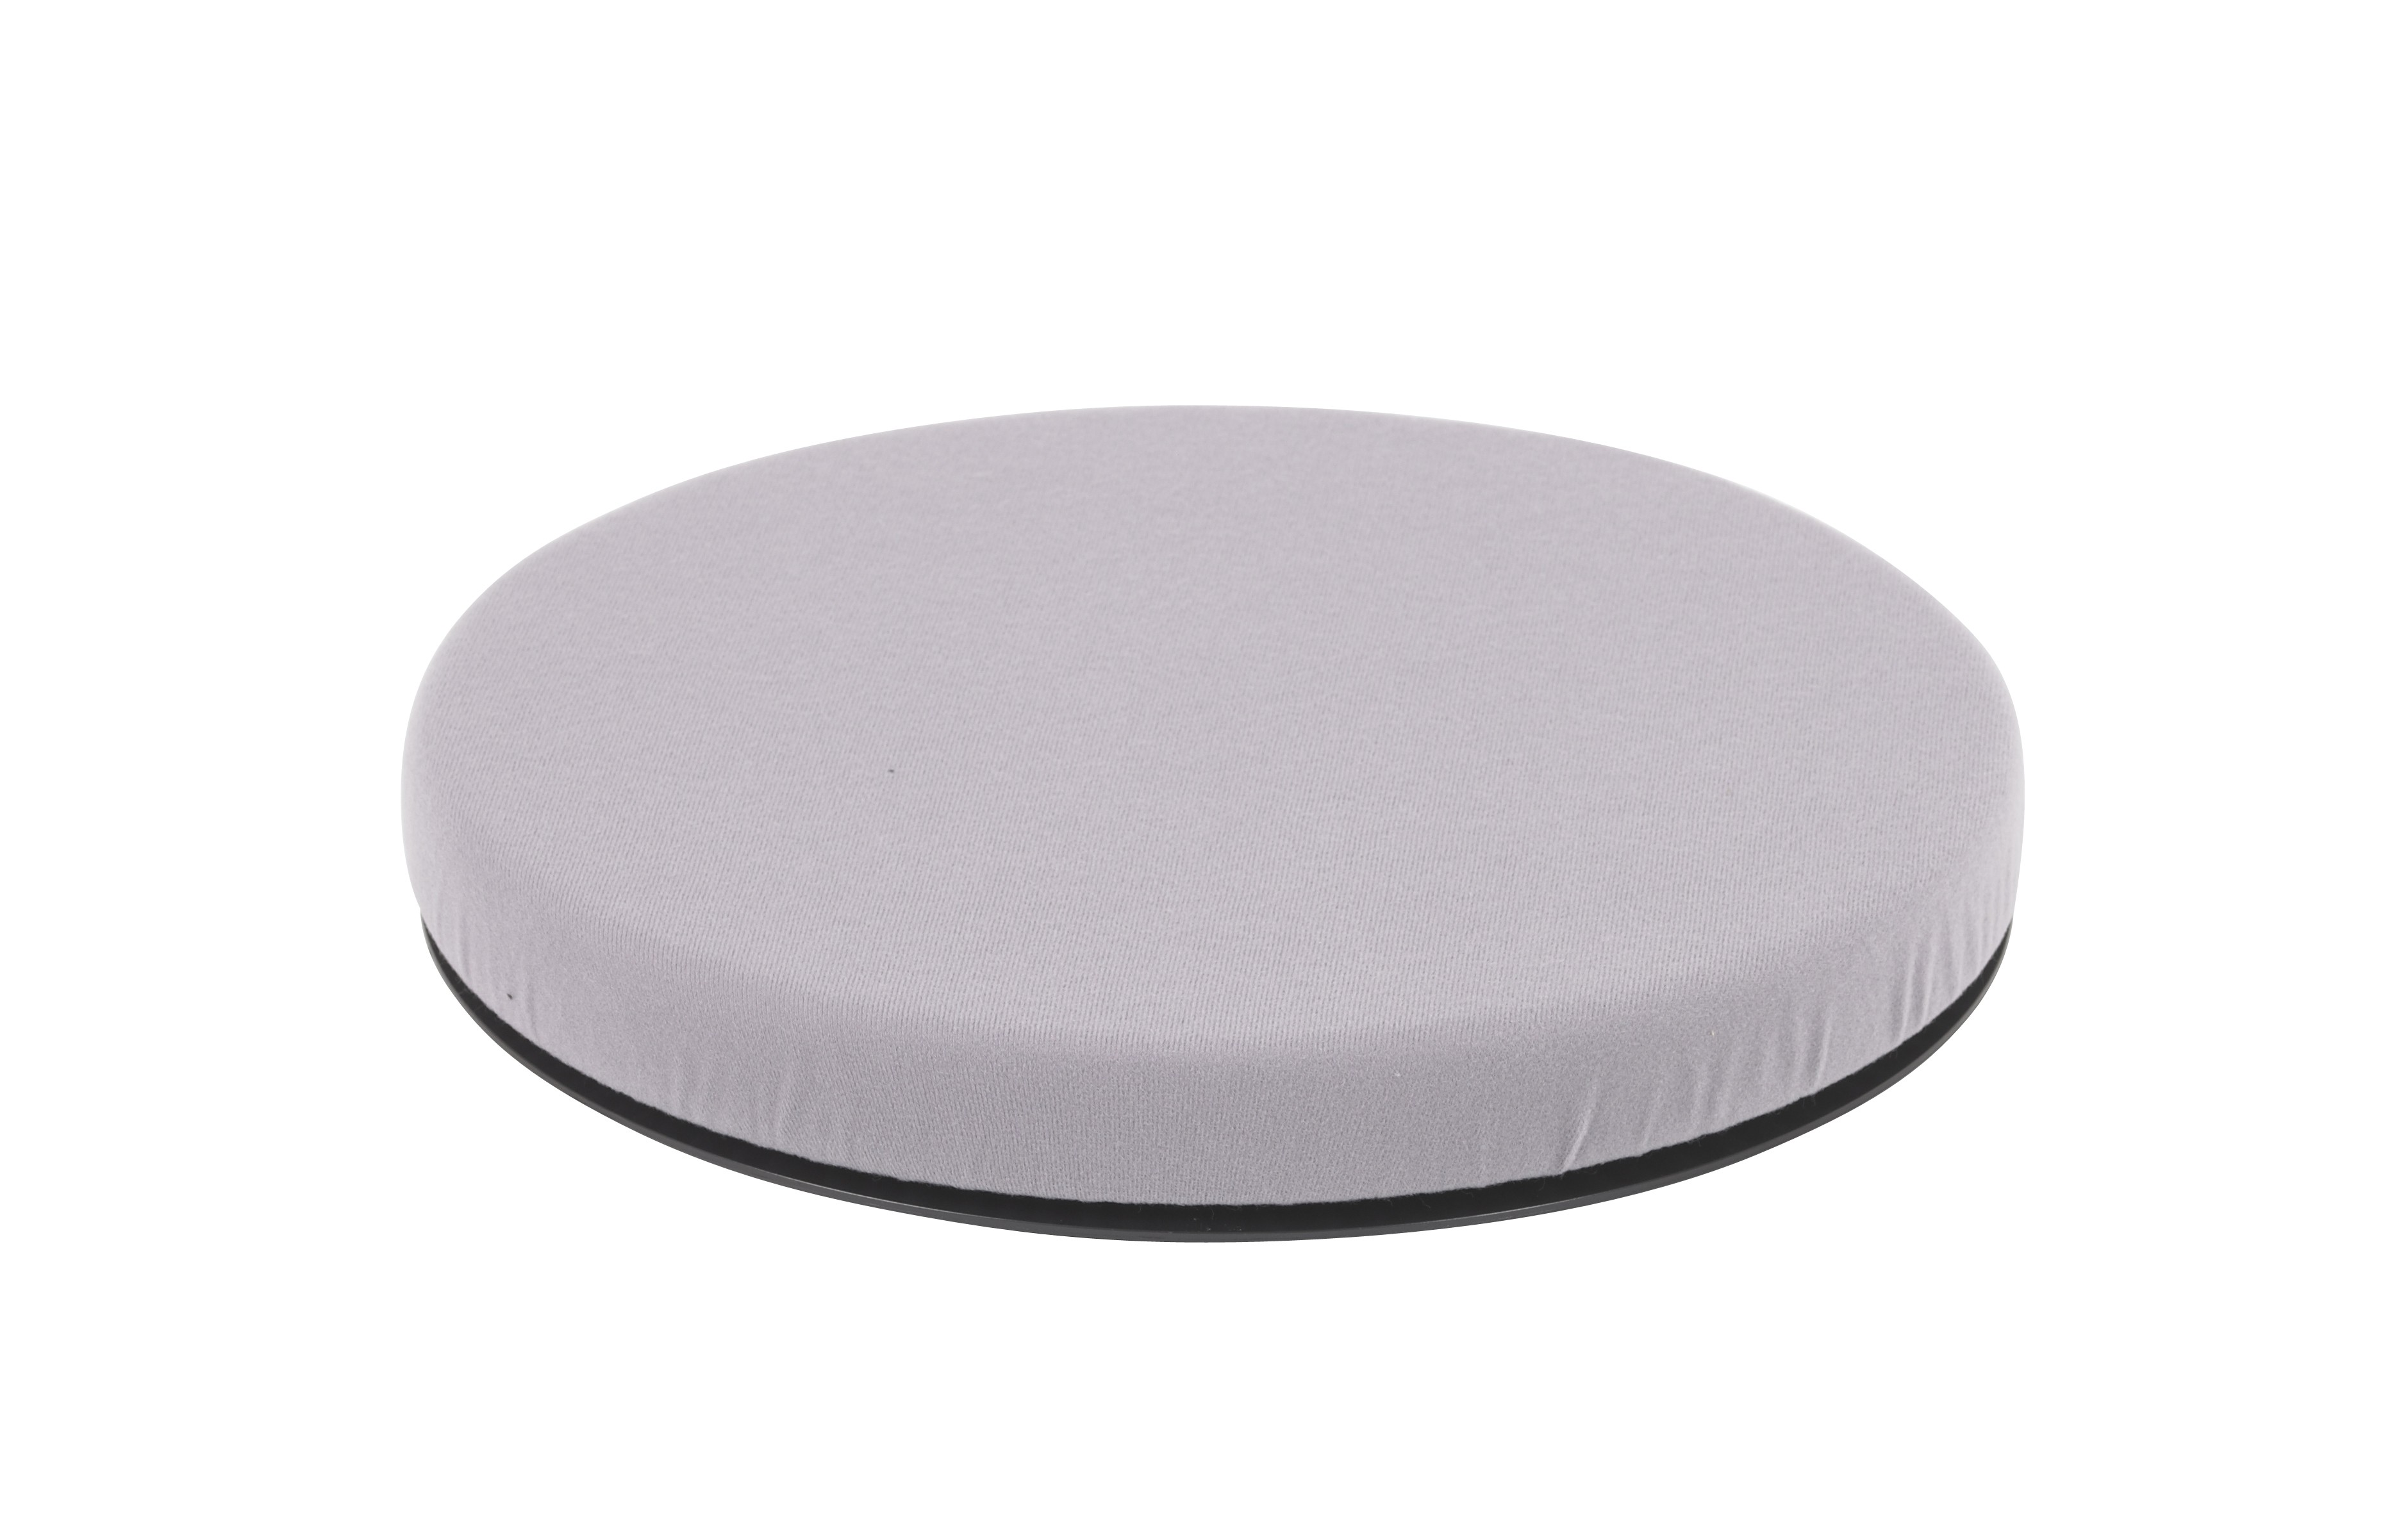 Drive DeVilbiss Healthcare Padded Swivel Seat Cushion